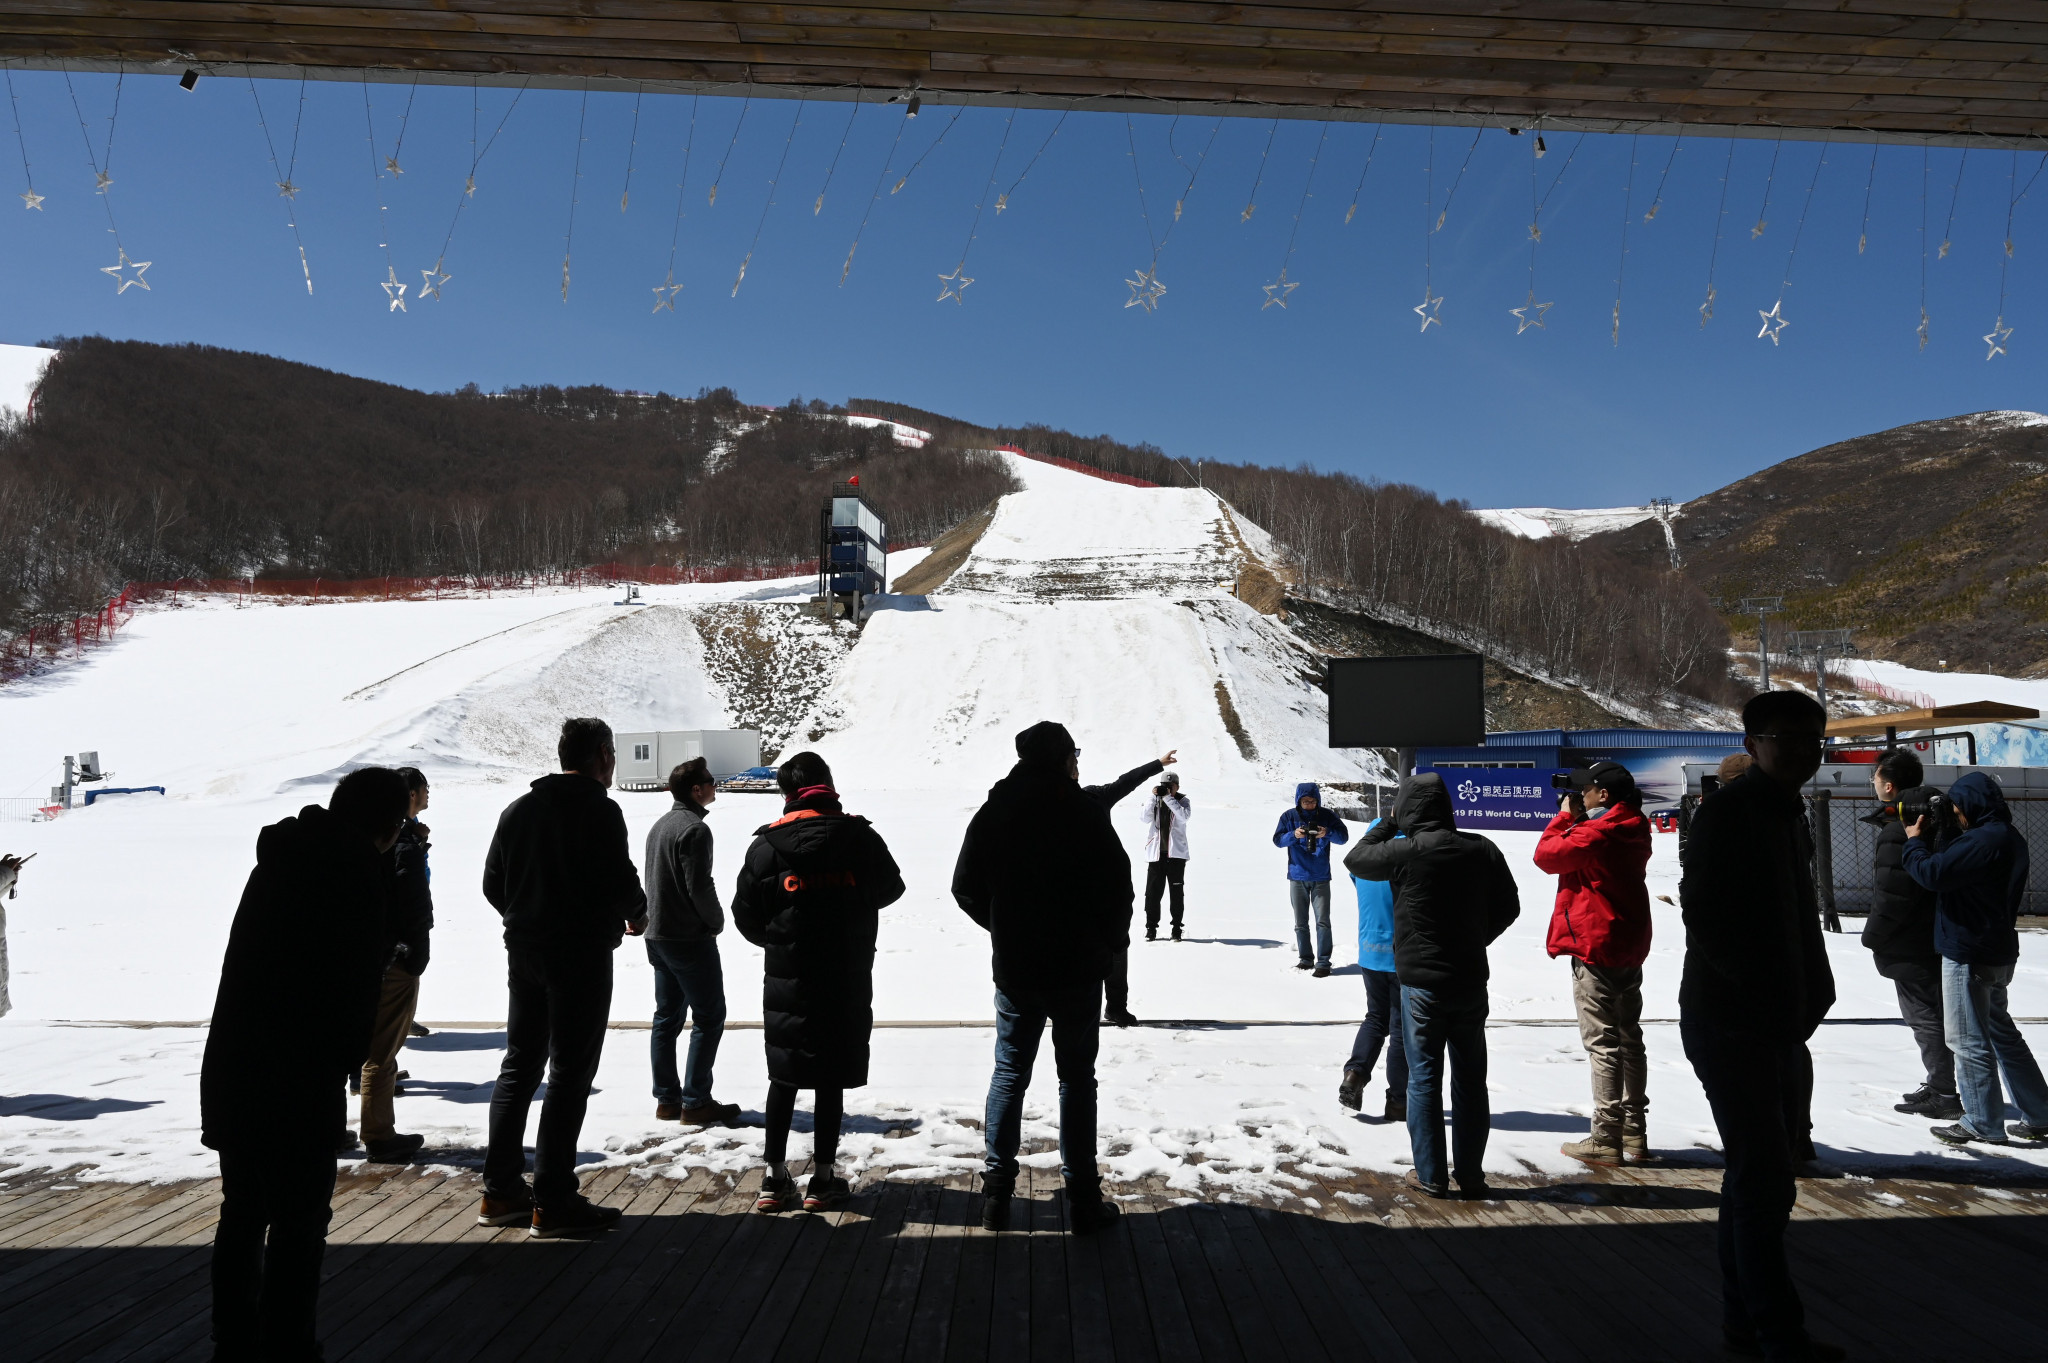 Hebei province has seen an increase in winter sport participation ©Getty Images